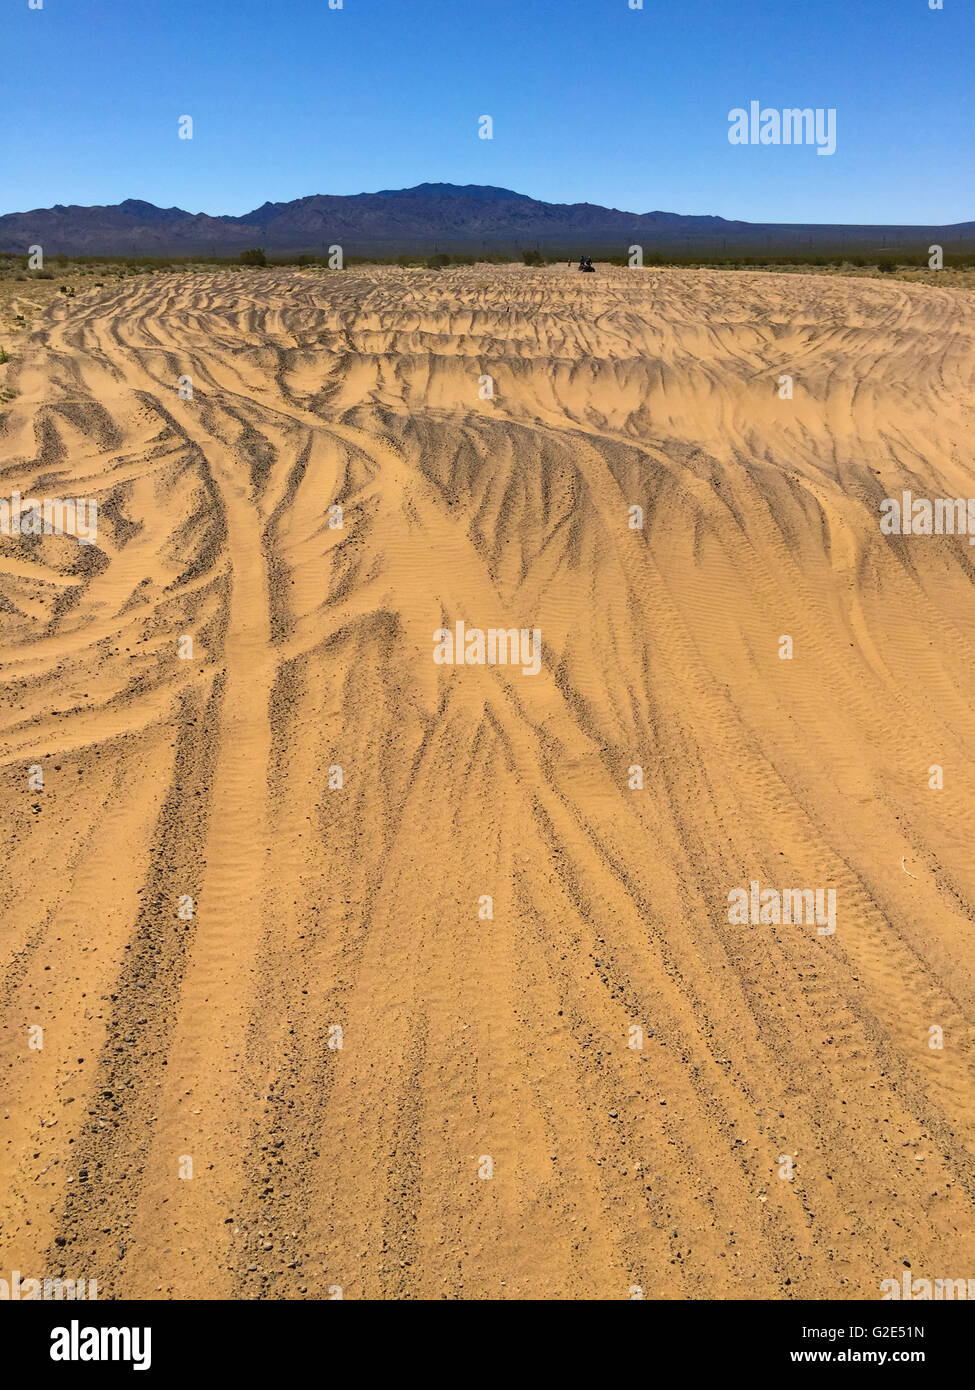 tire tracks in the desert in Nevada with a mountain range in the background and sky beyond - Stock Image